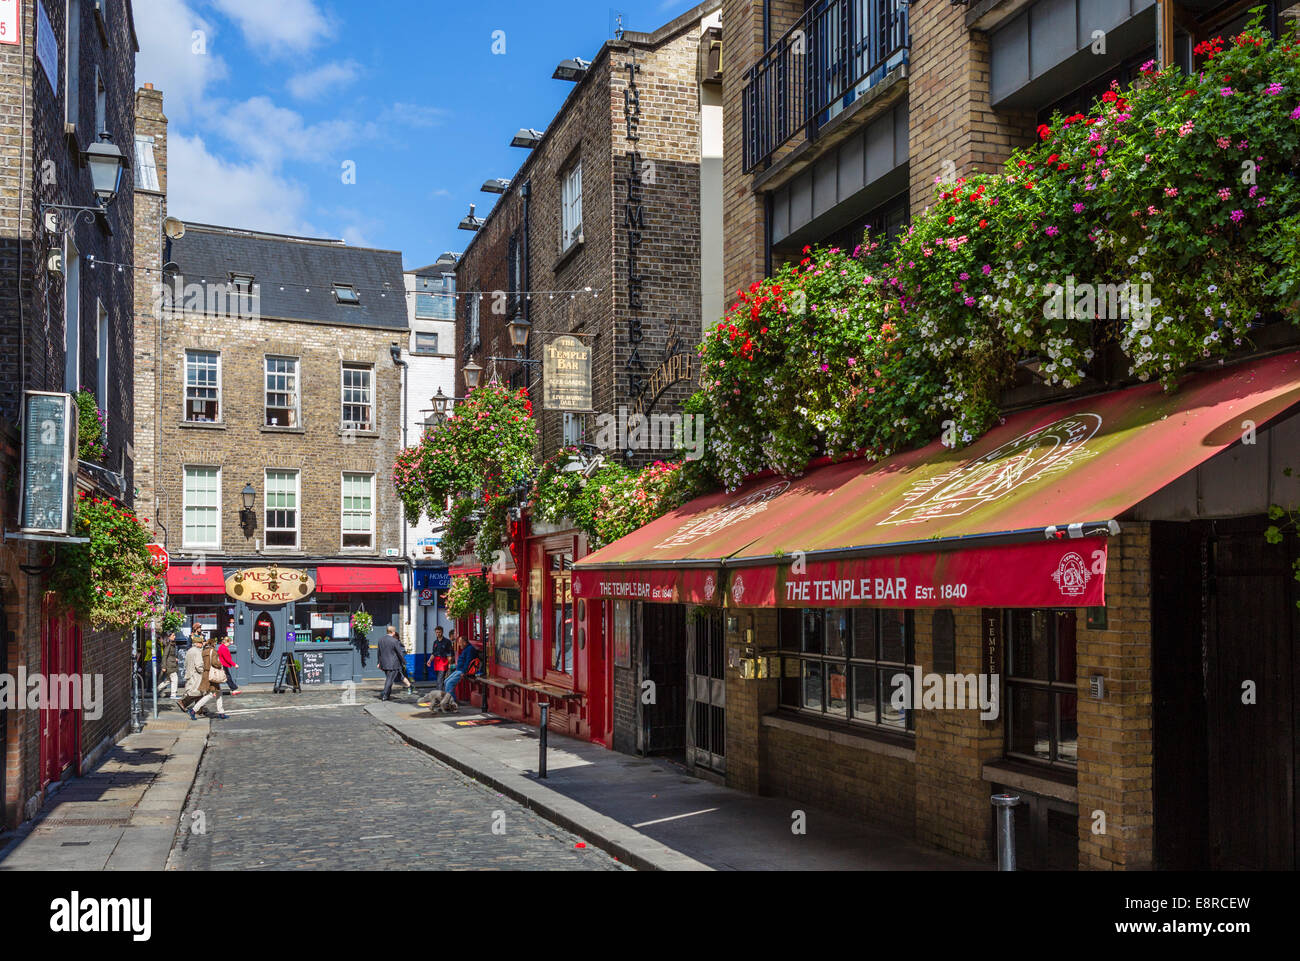 The Temple Lane entrance to the Temple Bar pub, Temple Bar, Dublin City, Republic of Ireland Stock Photo